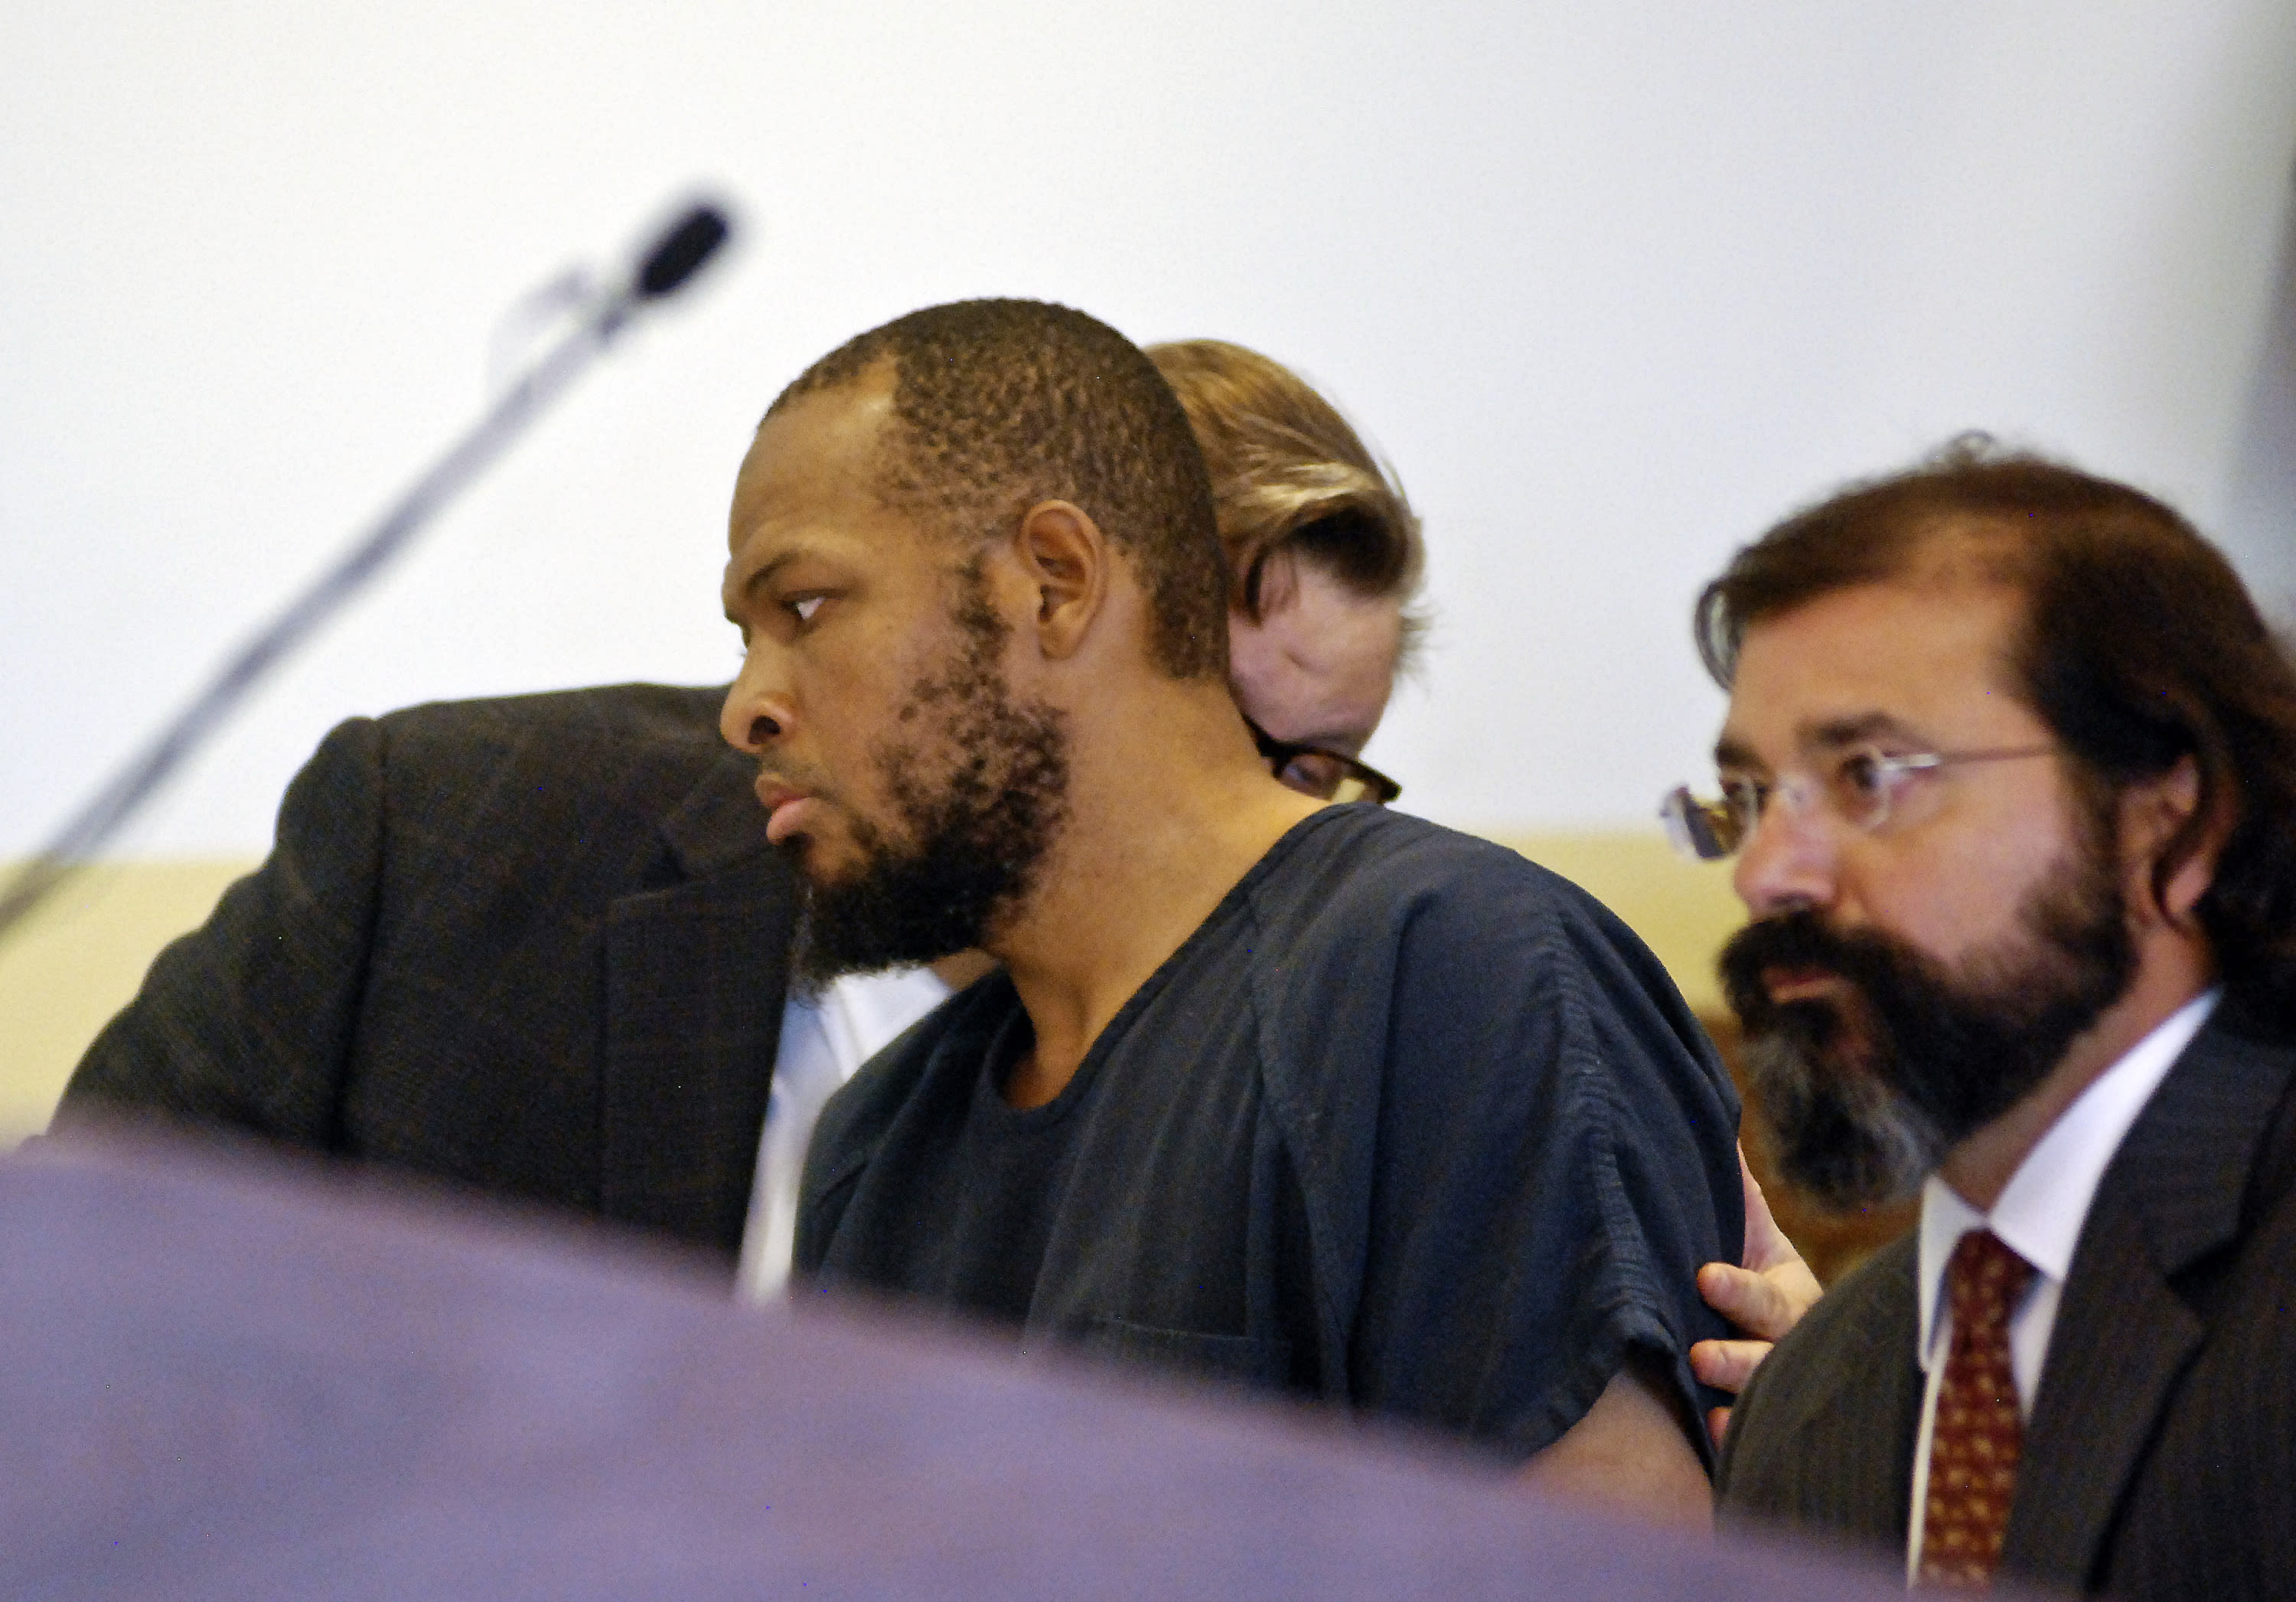 The Latest: Attorney says client in federal custody